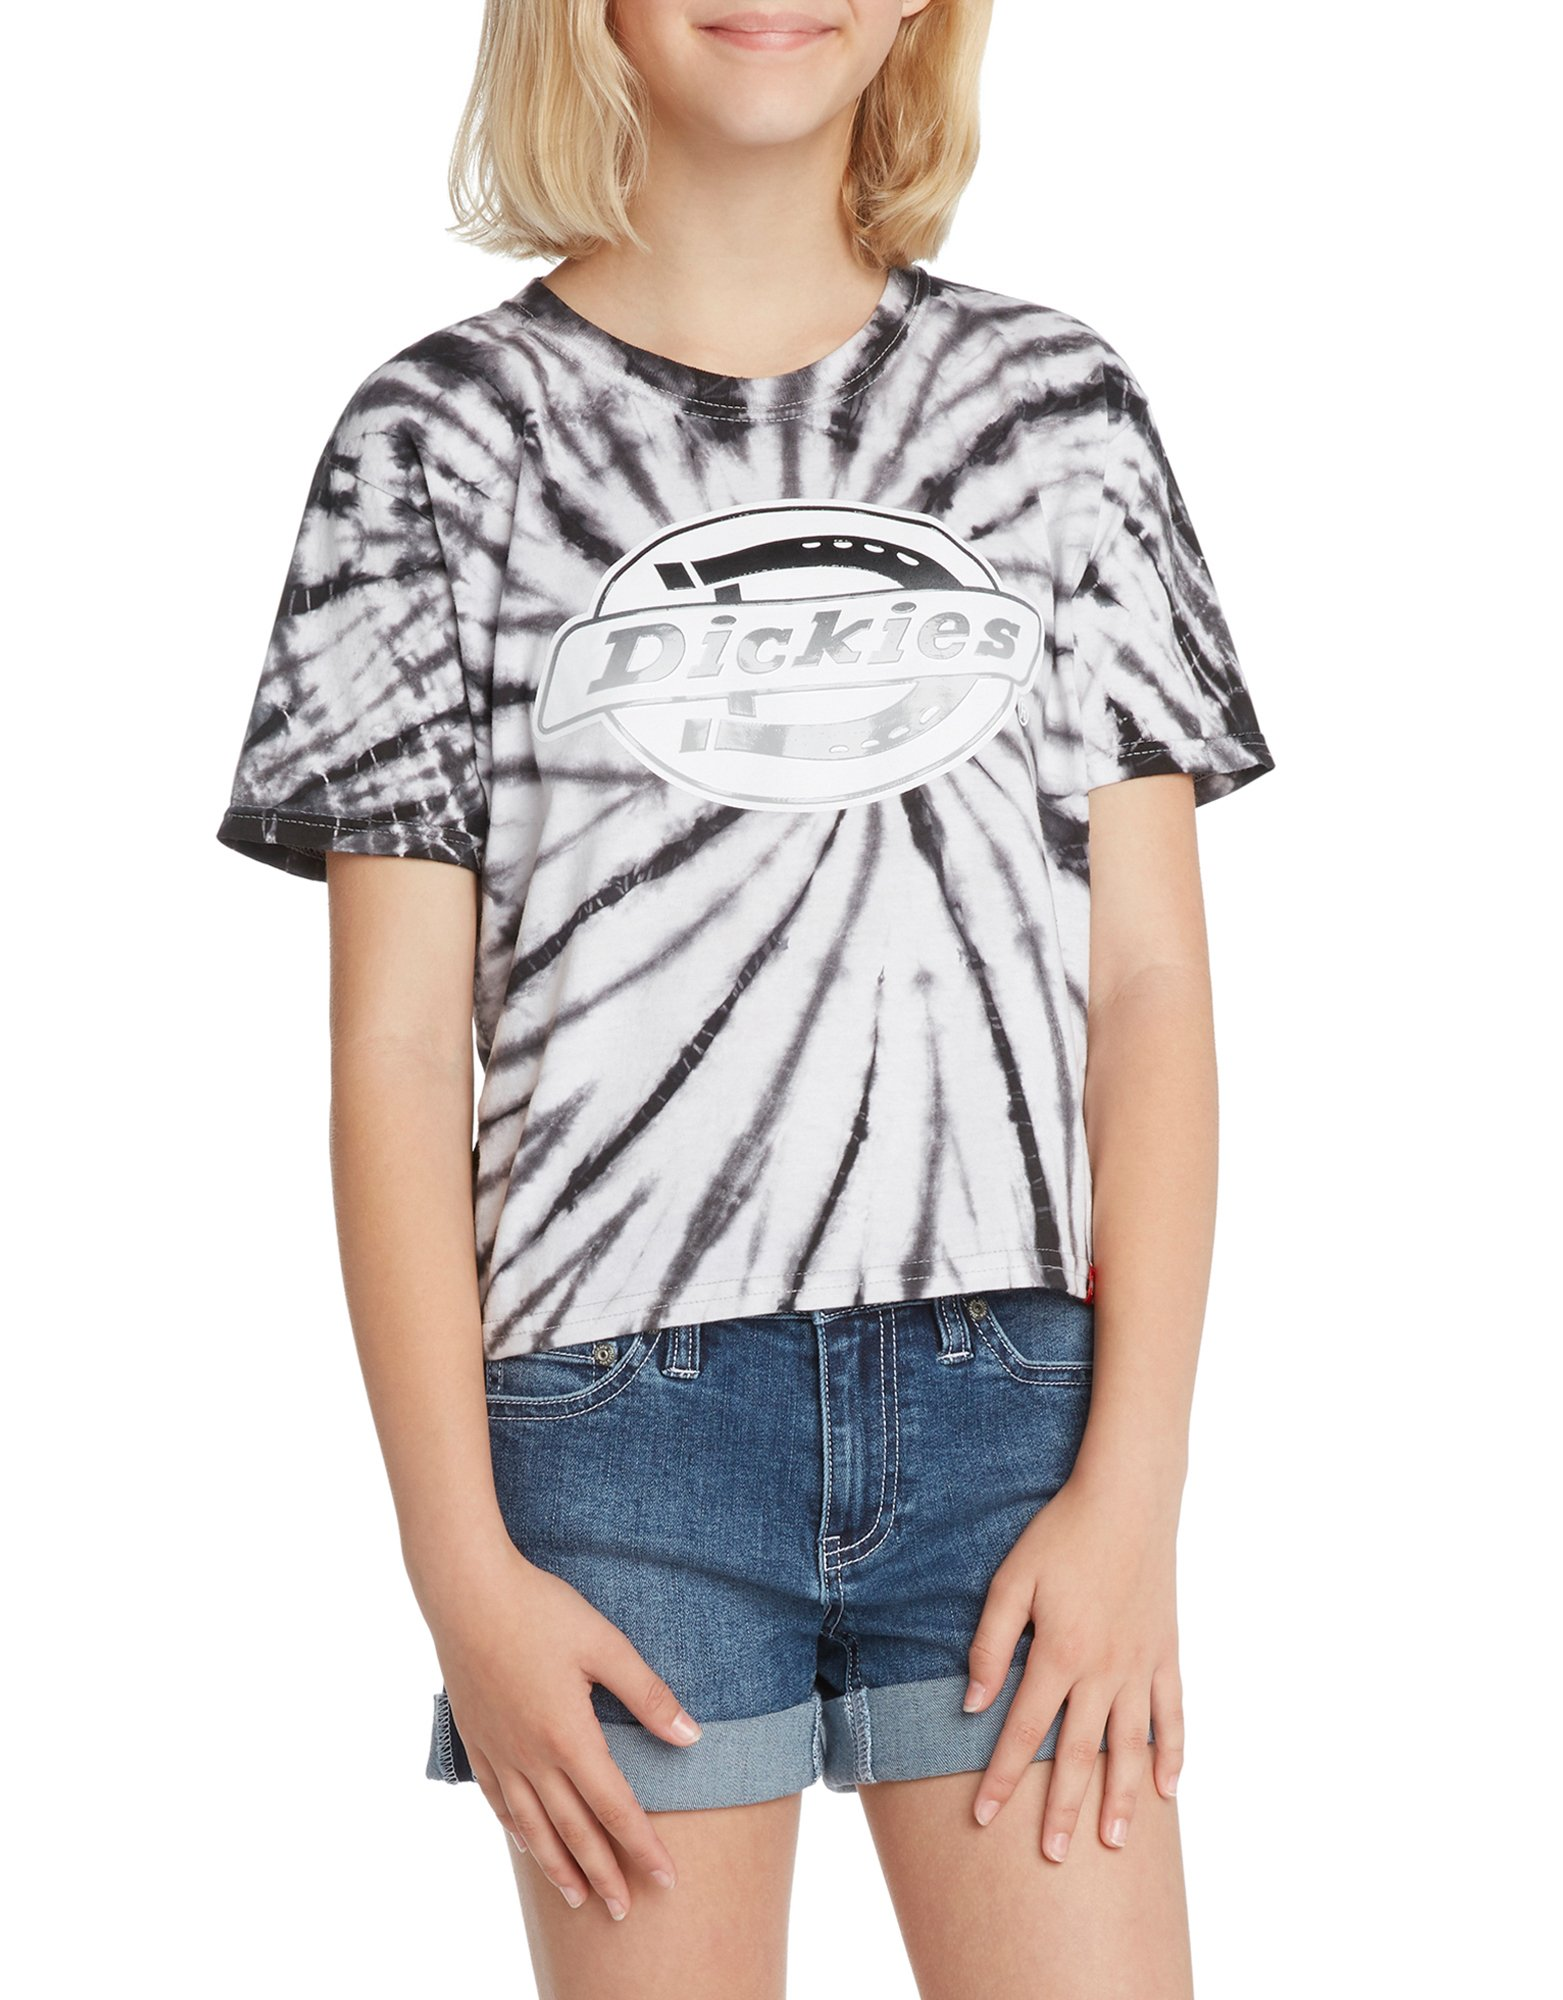 Girls' Short Sleeve Cropped Tie-Dye T-Shirt - Black/White (BKW)